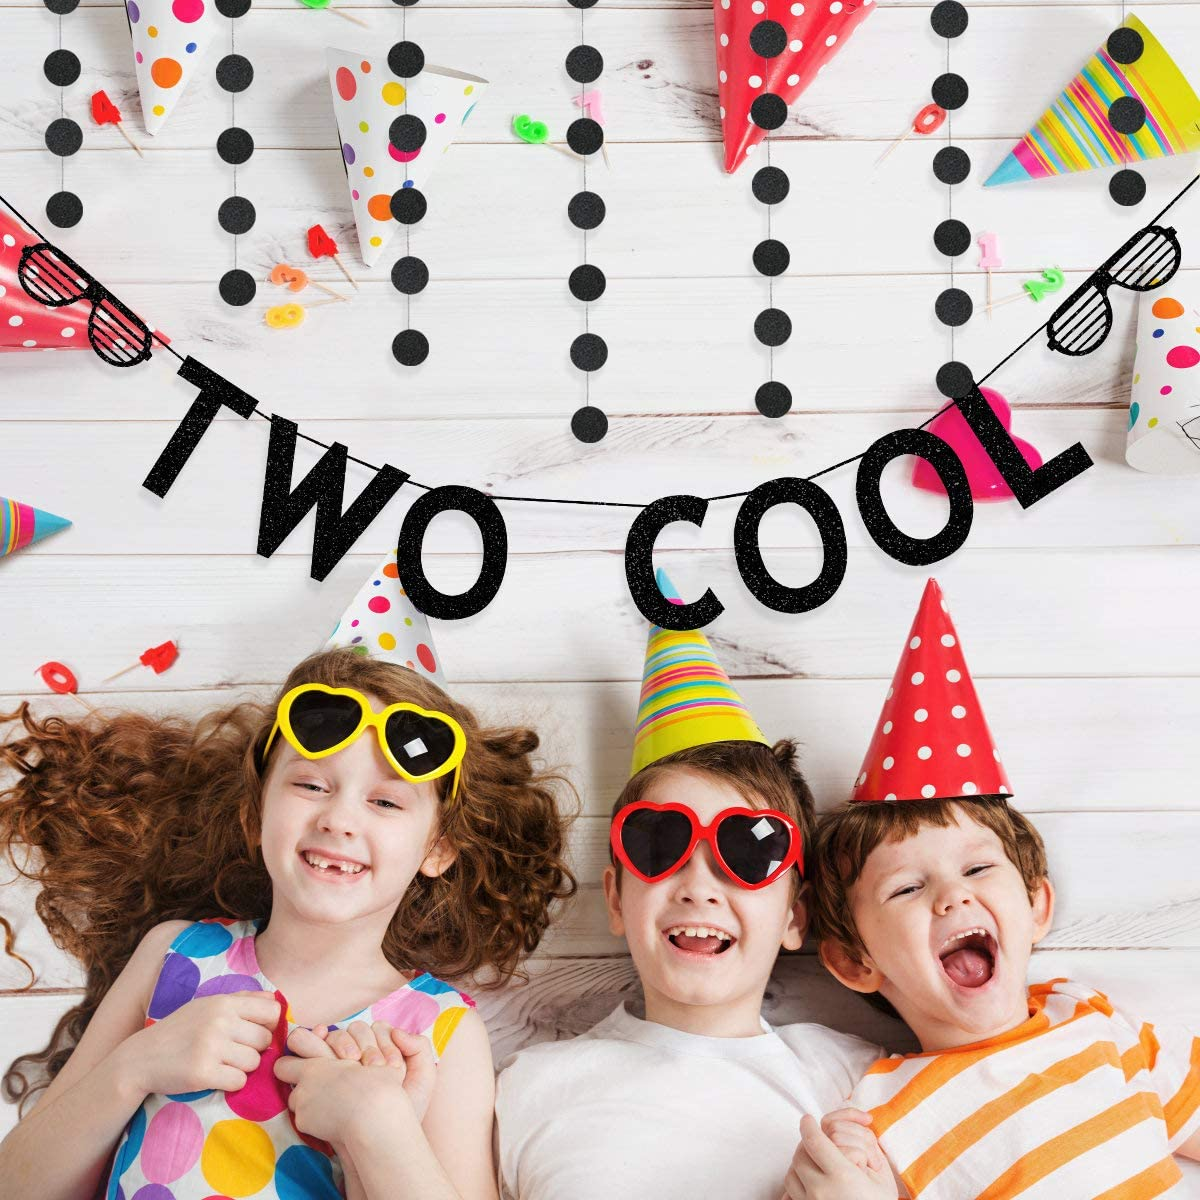 Black Glittery Two Cool Banner and Black Glittery Circle Dots Garland,2nd Birthday Party Banner Decorations